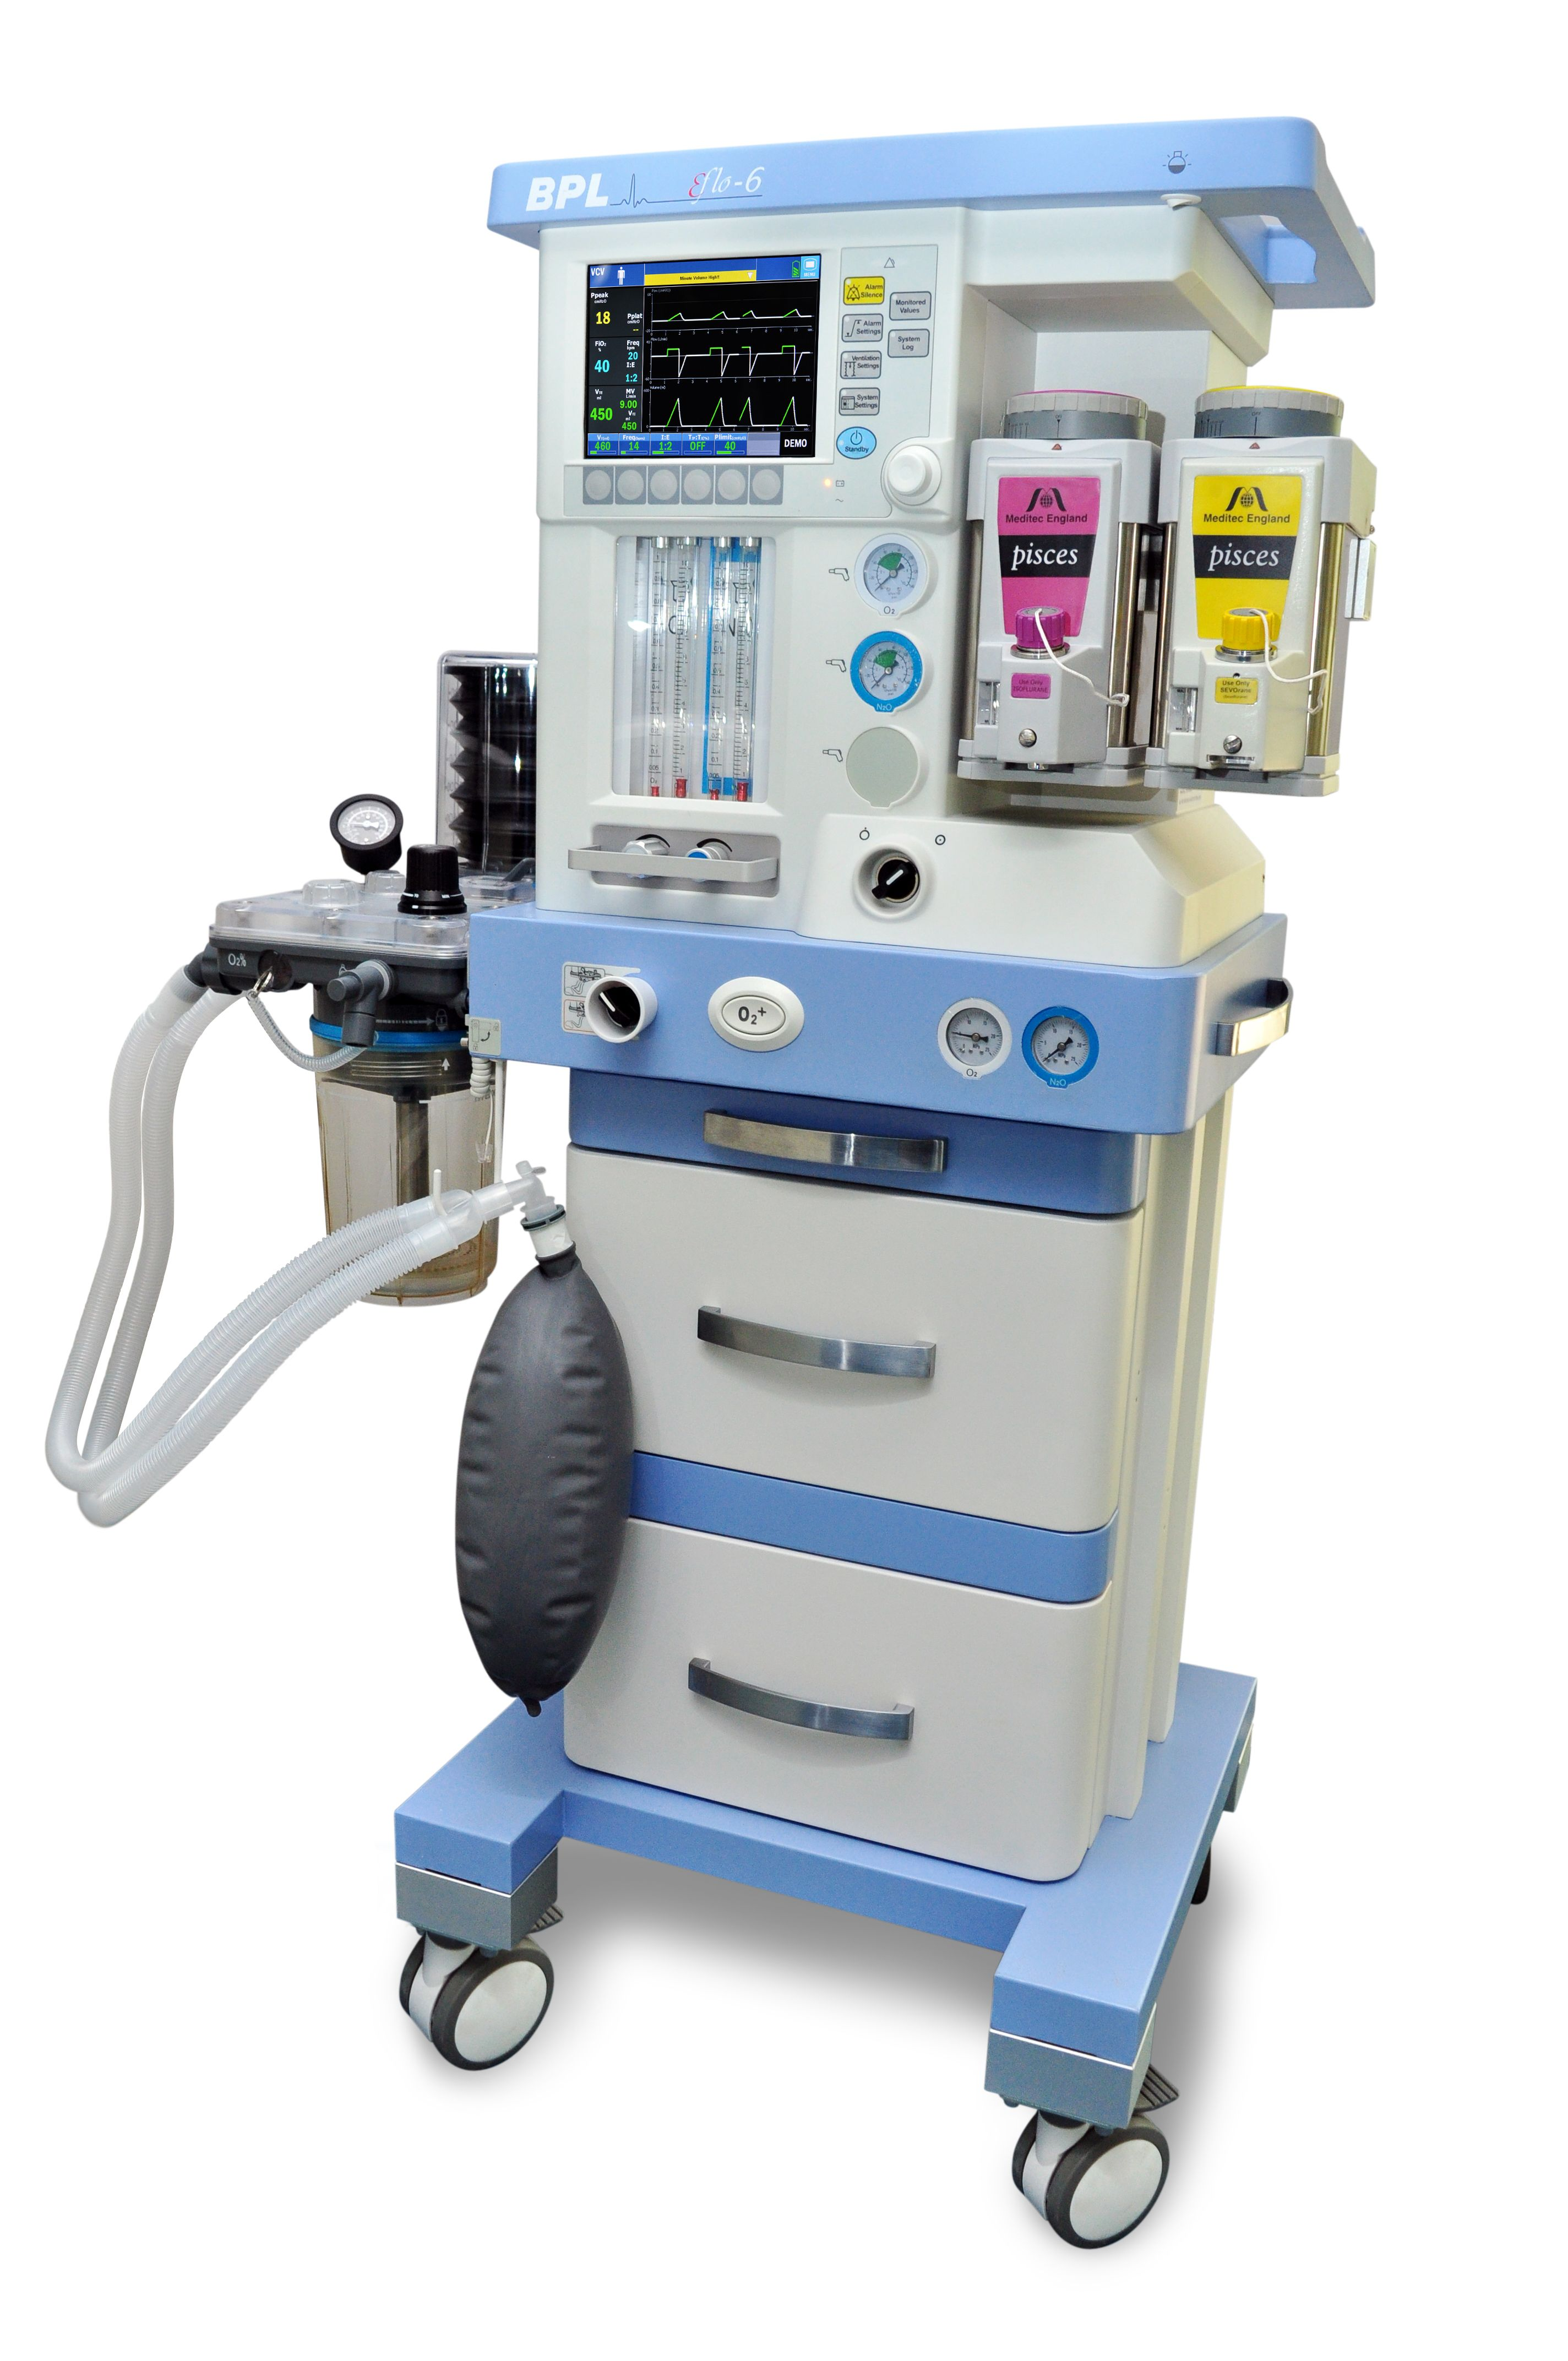 E Flo 6 Anesthesia Workstation From Bpl Medical Technologies Private Limited Has An Advanced Proportional Solenoid Medical Technology Workstation Critical Care